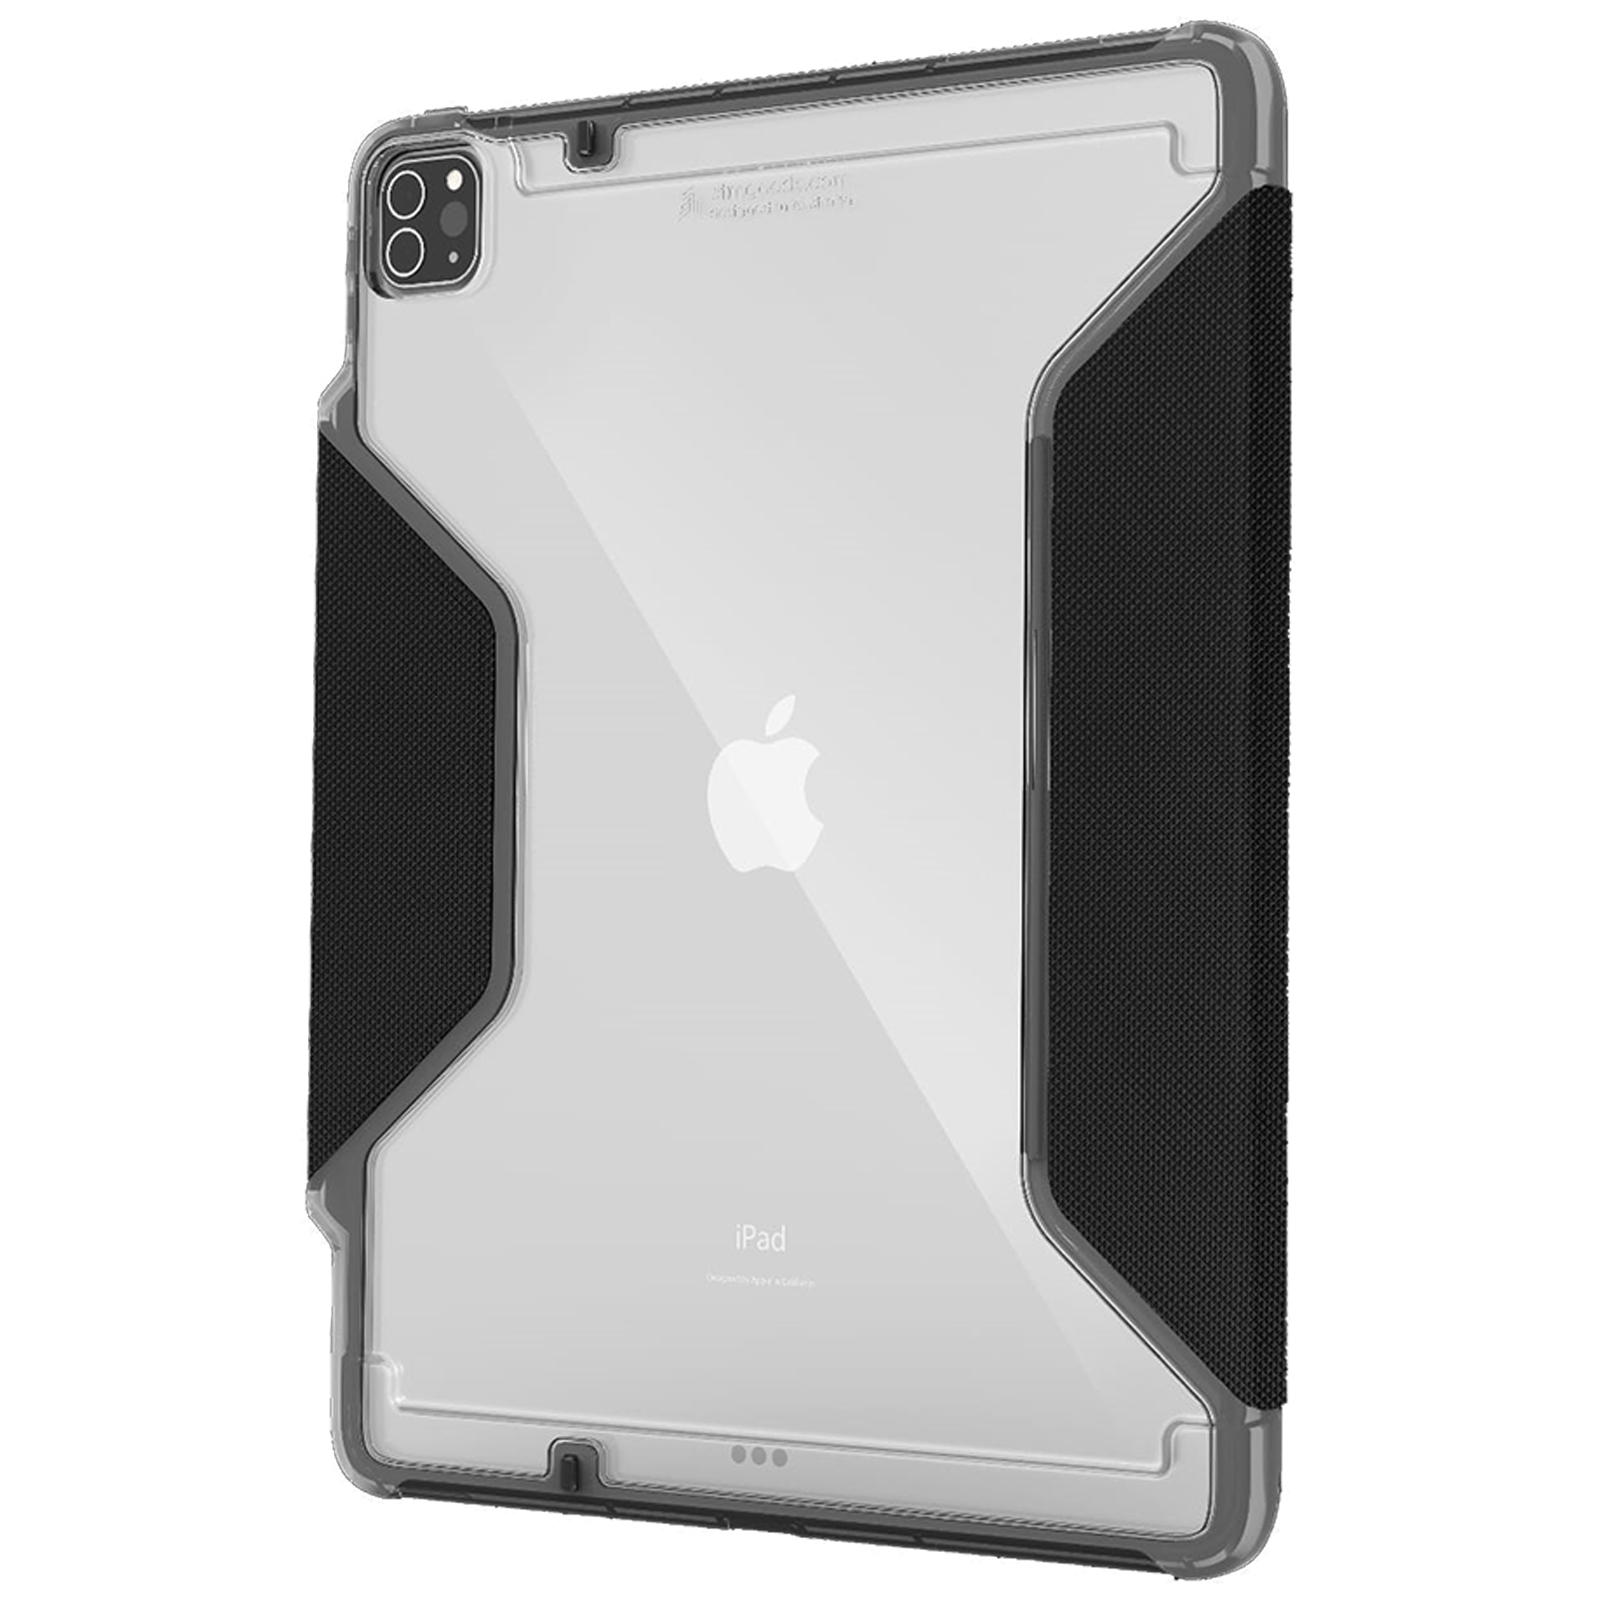 STM Rugged Plus Polycarbonate, Rubberised TPU, Polyurethane Flip Case For iPad Pro 11 Inch (Instant On/Off Cover, STM-222-328KZ-01, Black)_1